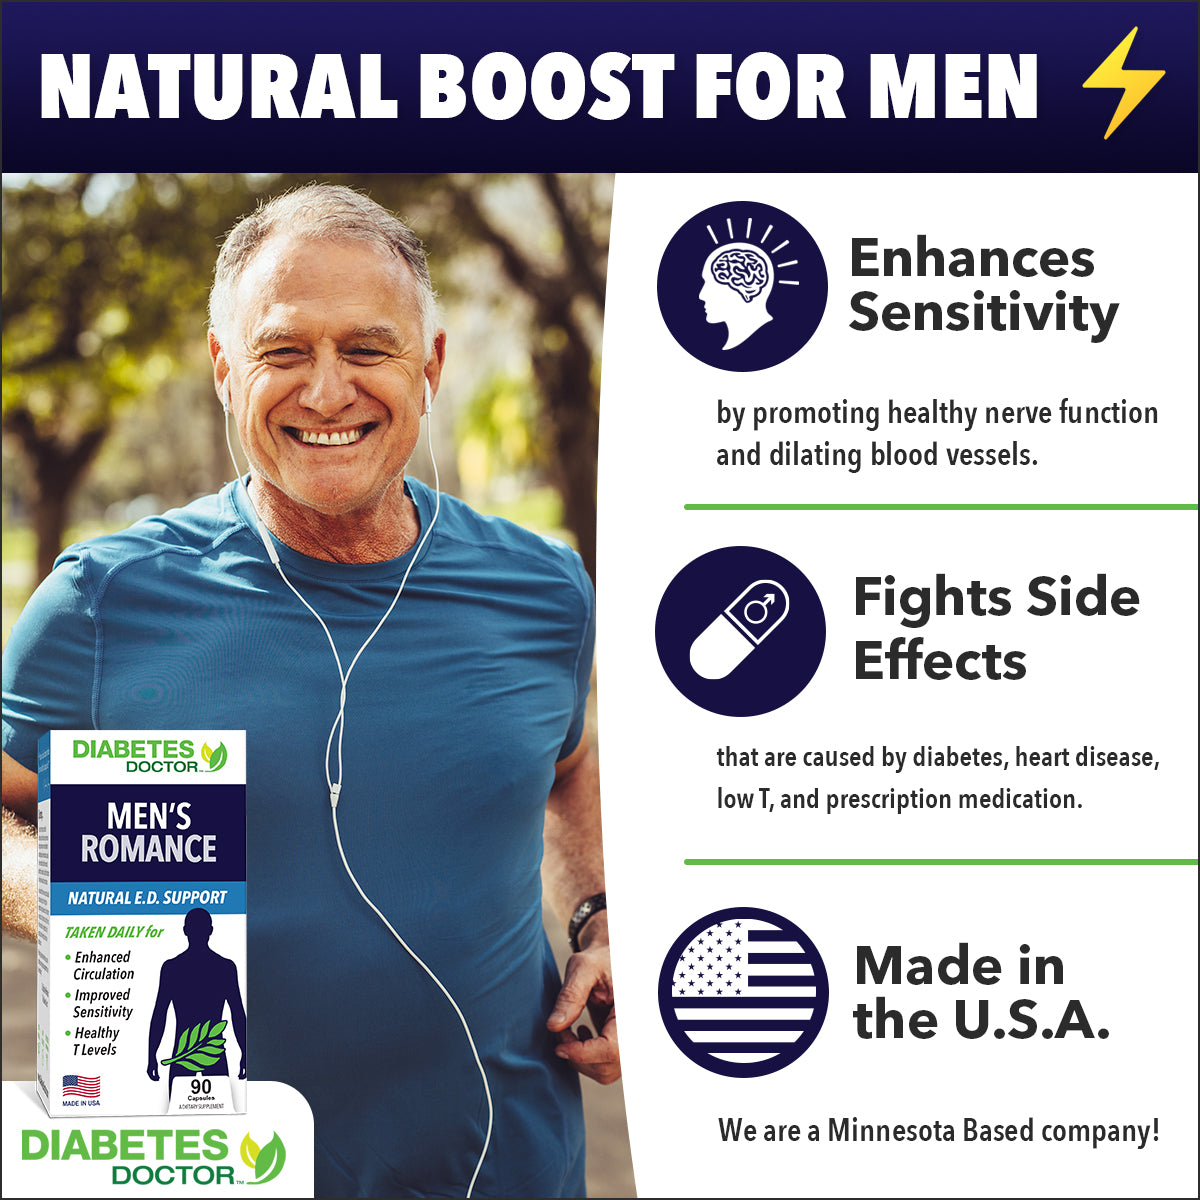 Extra-Strength Blood Sugar & Men's Romance - Double Pack